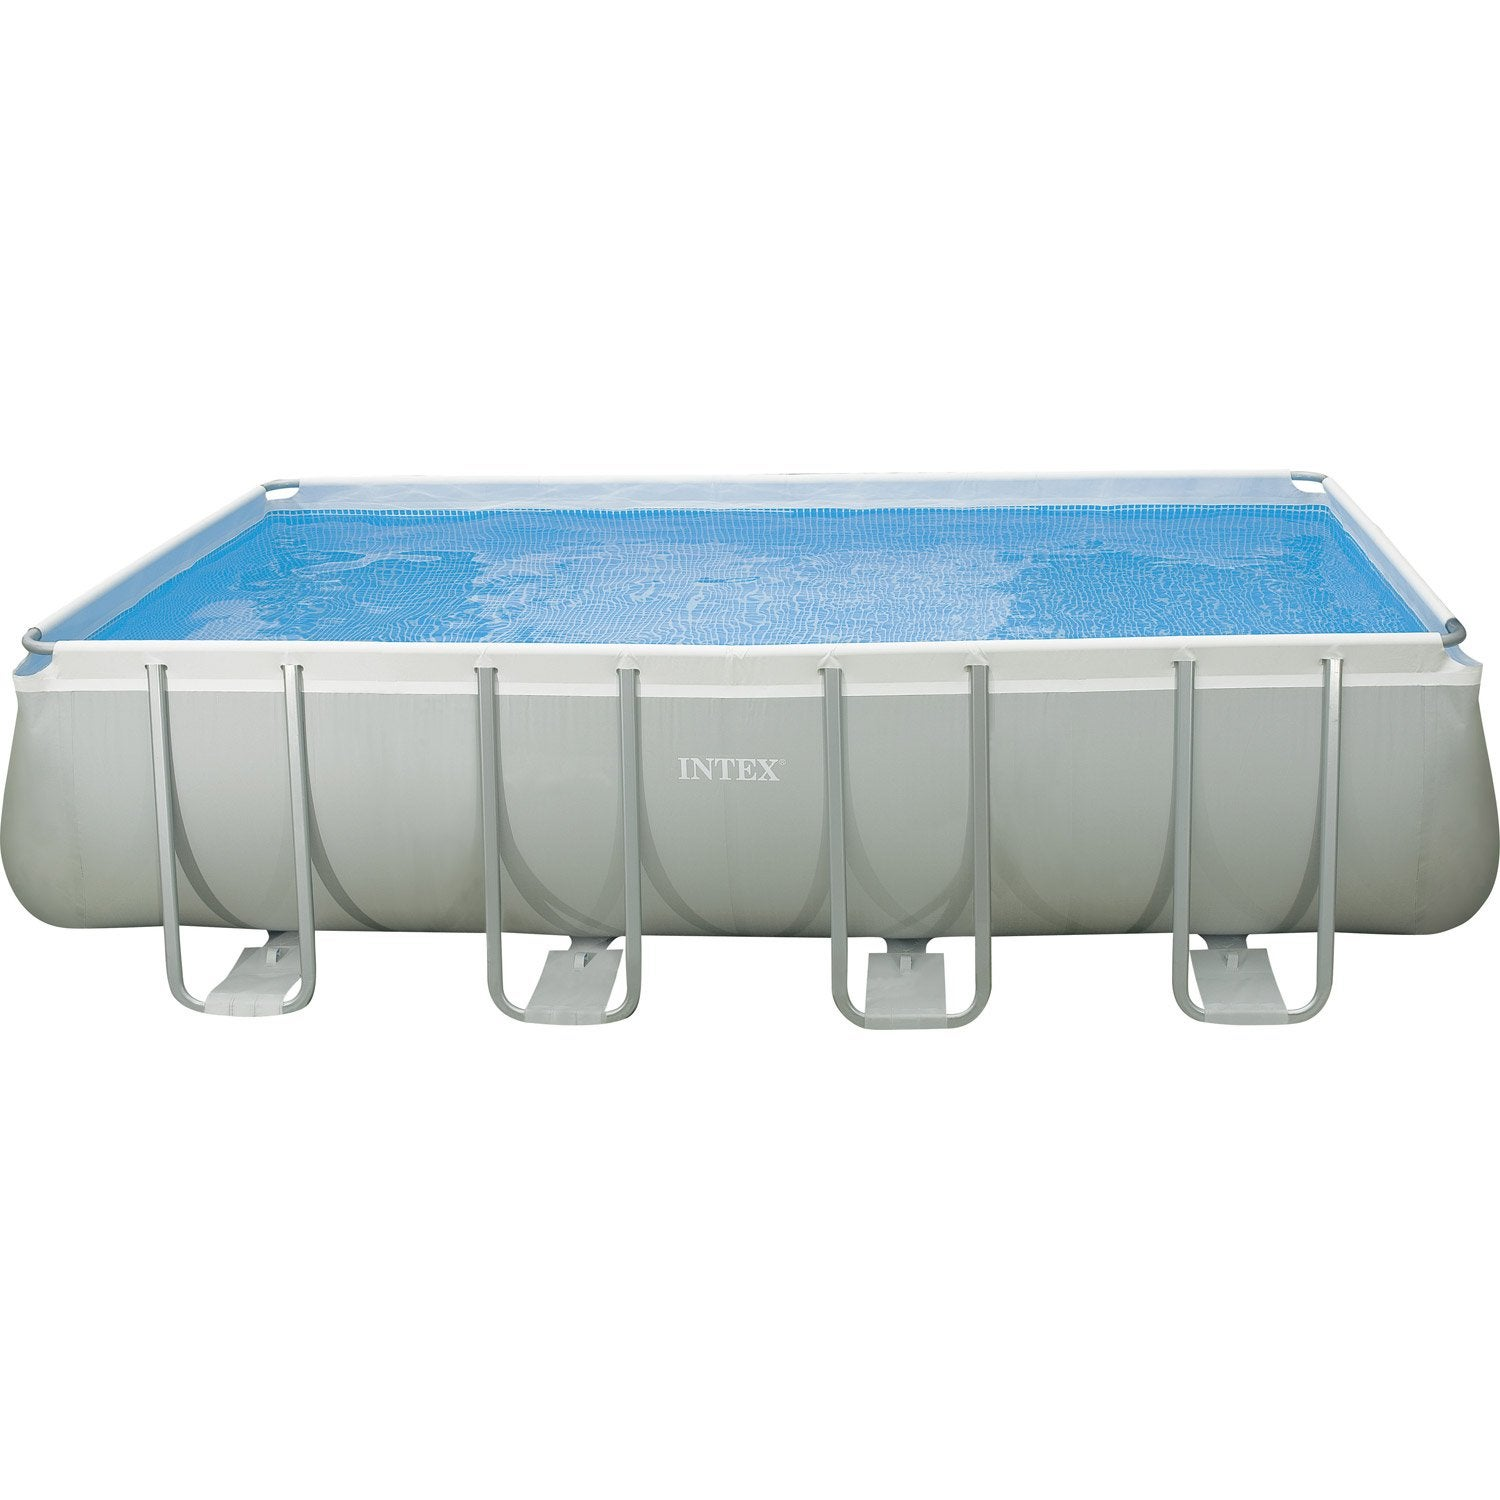 Piscine hors sol autoportante tubulaire intex l x l for Robot pour piscine intex